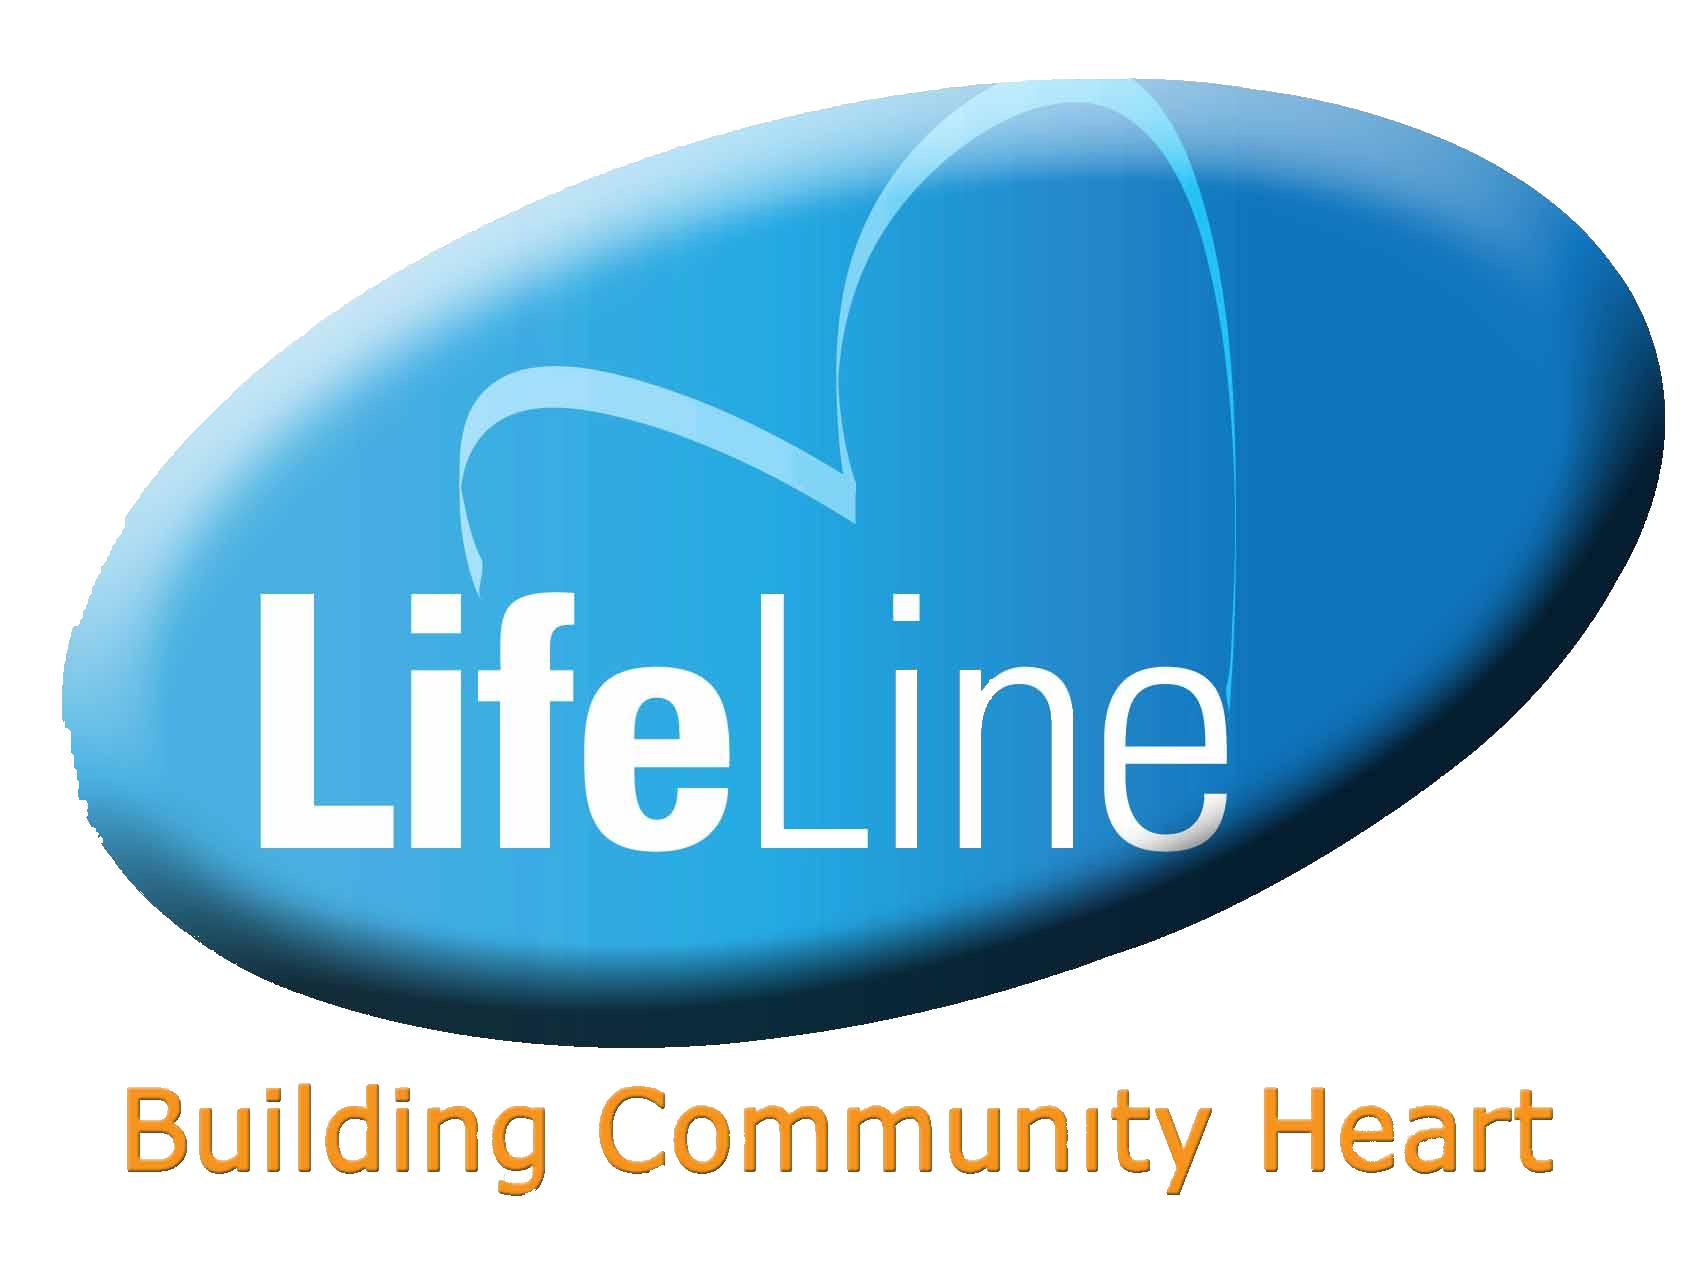 Lifeline Klerksdorp